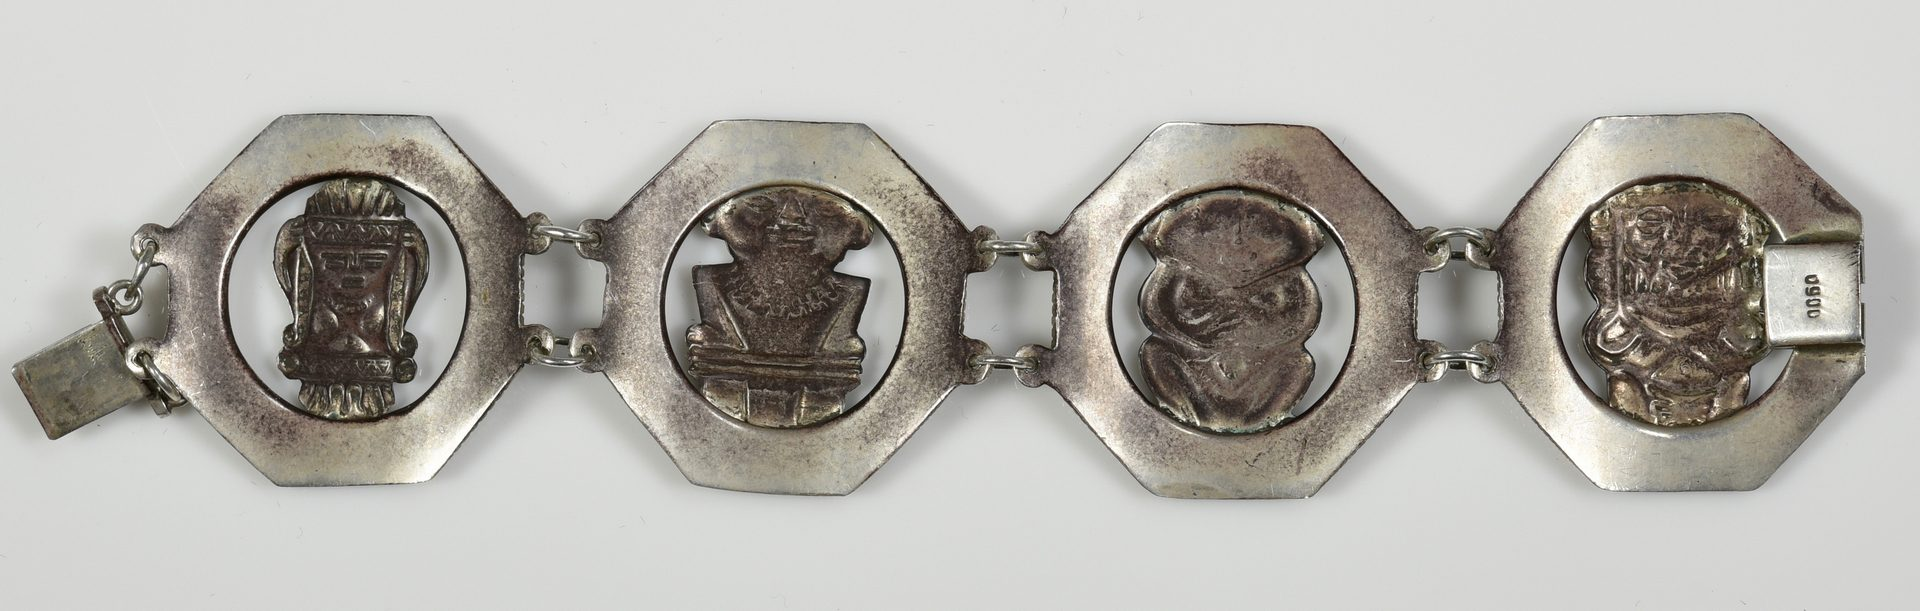 Lot 968: South American Gold and Silver Jewelry